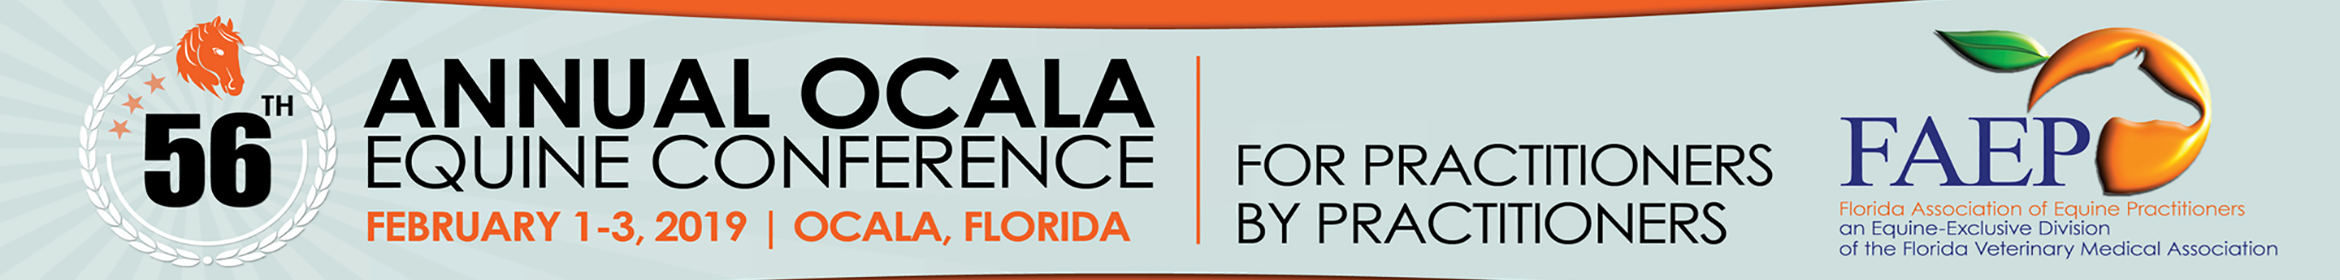 56th Annual FAEP Ocala Equine Conference 2019 Main banner